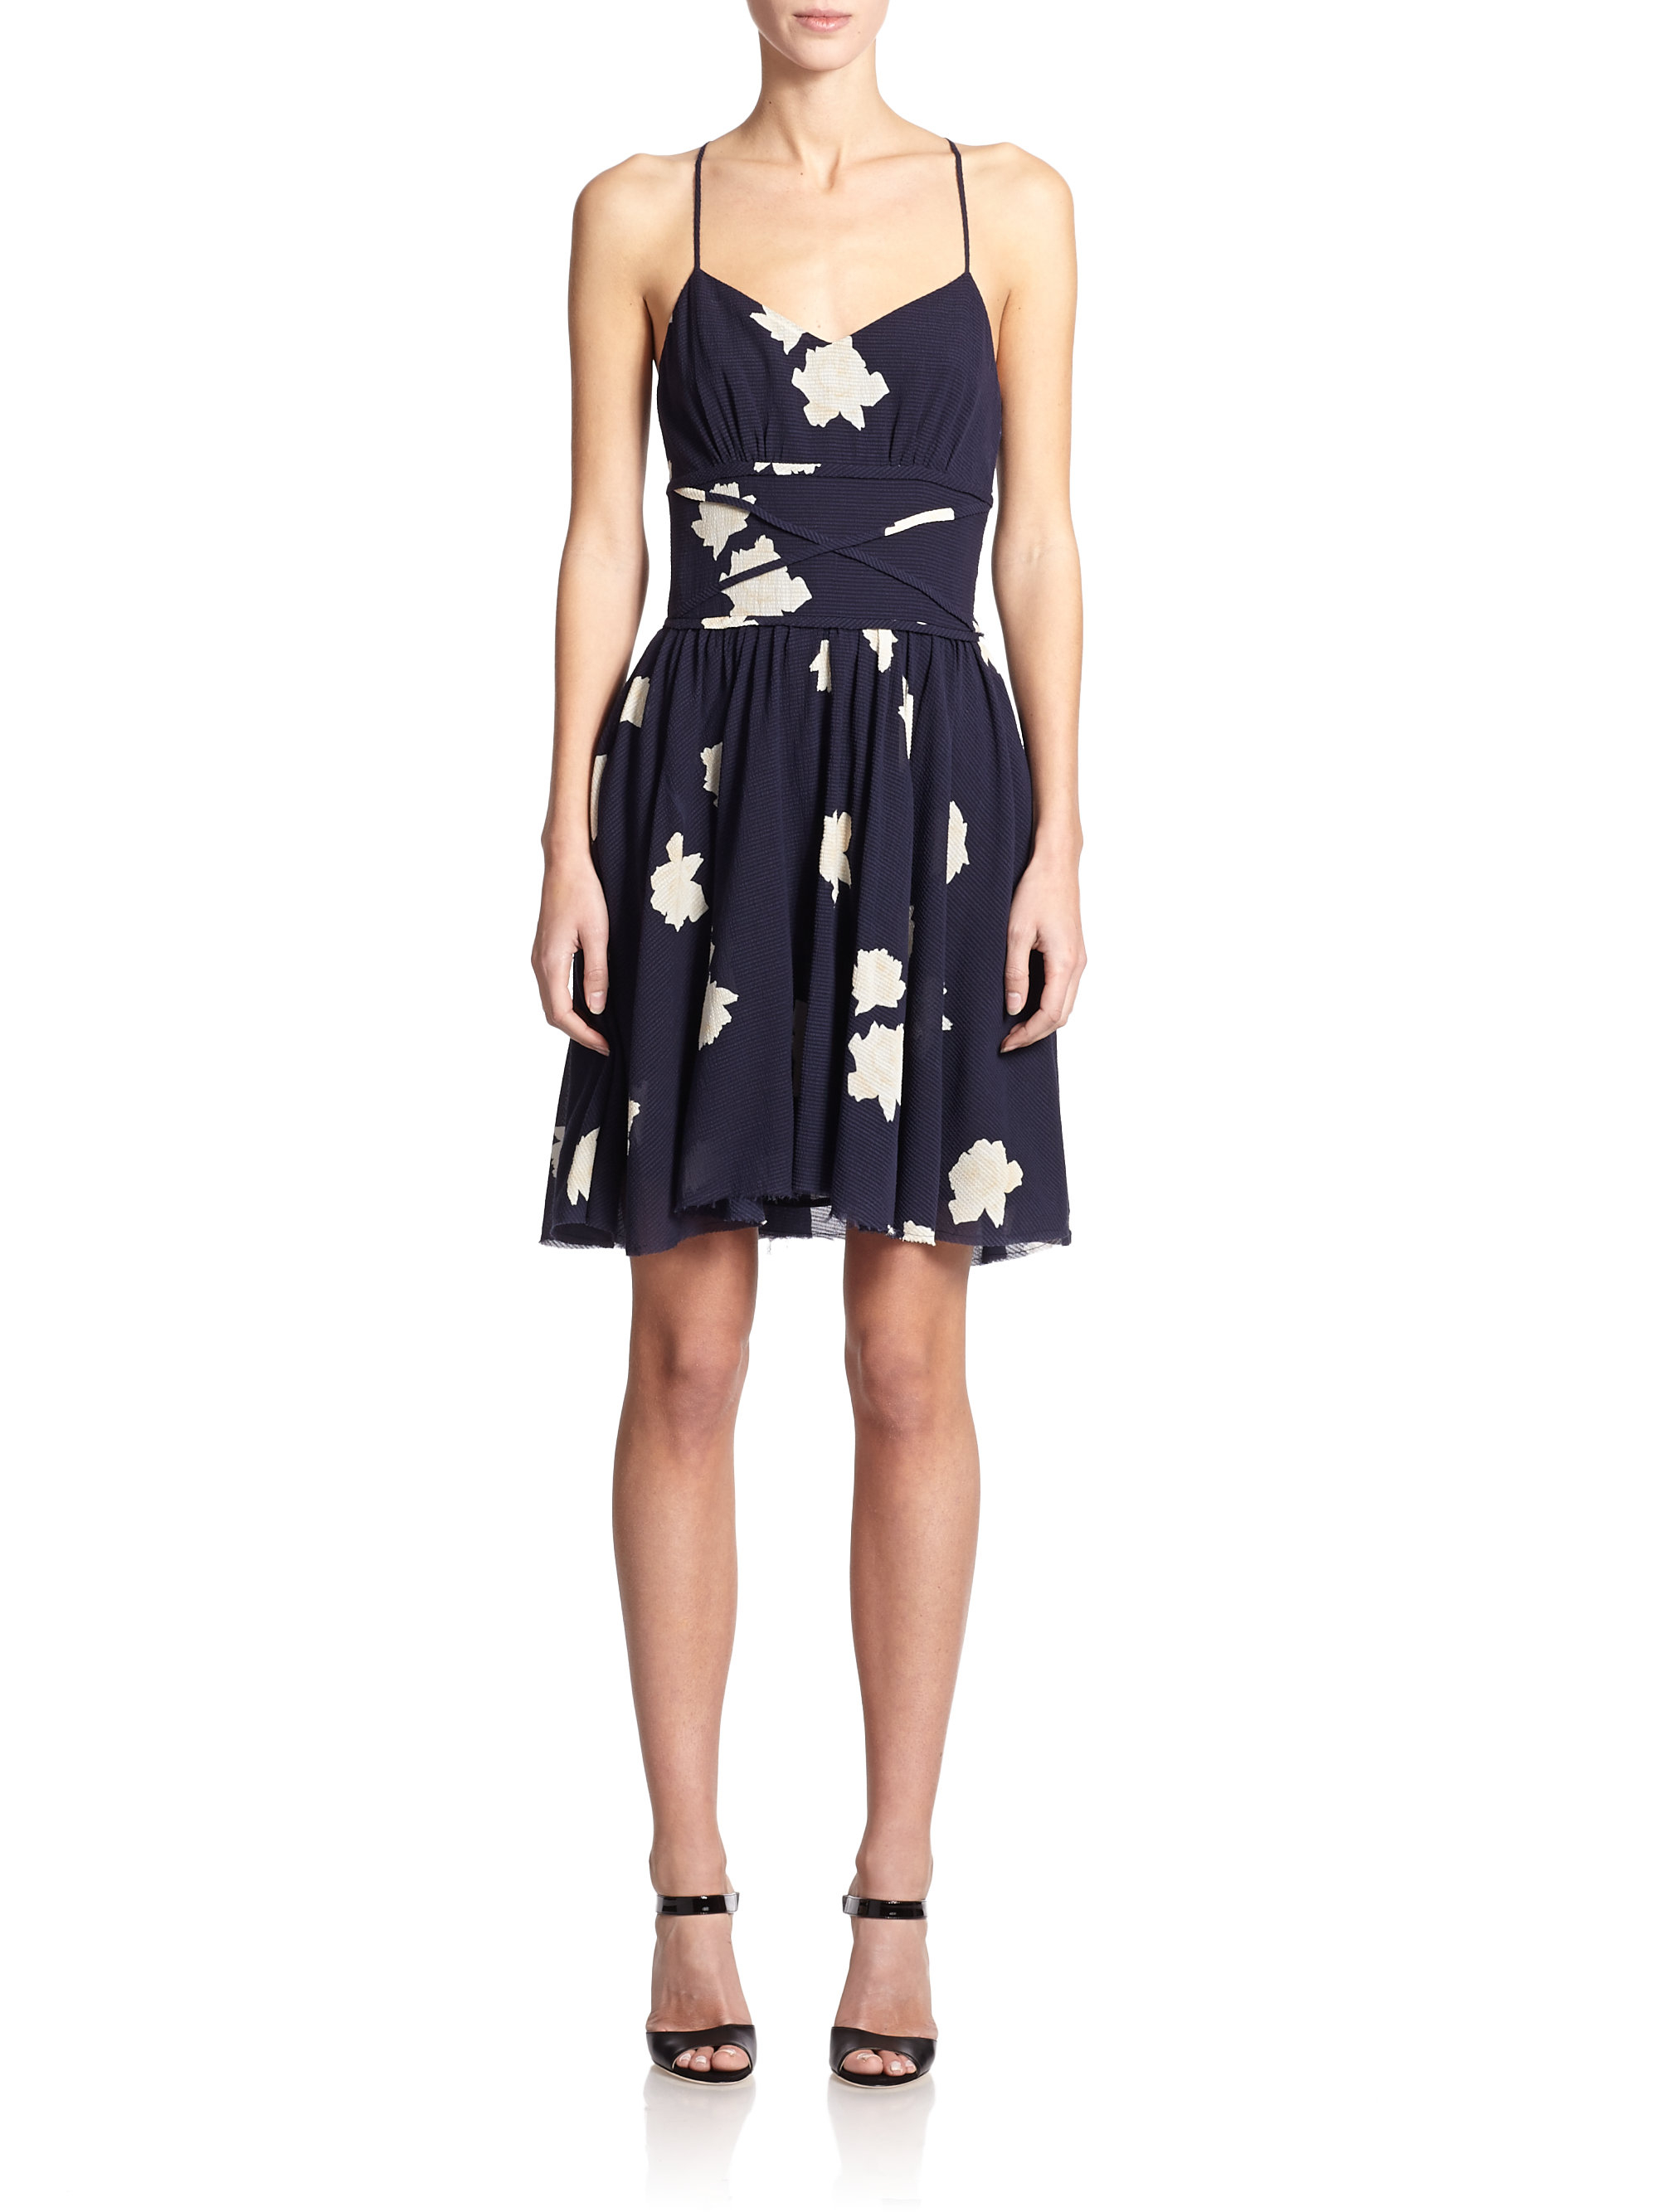 Band of outsiders Printed Stretch Cotton & Silk Slip Dress ...